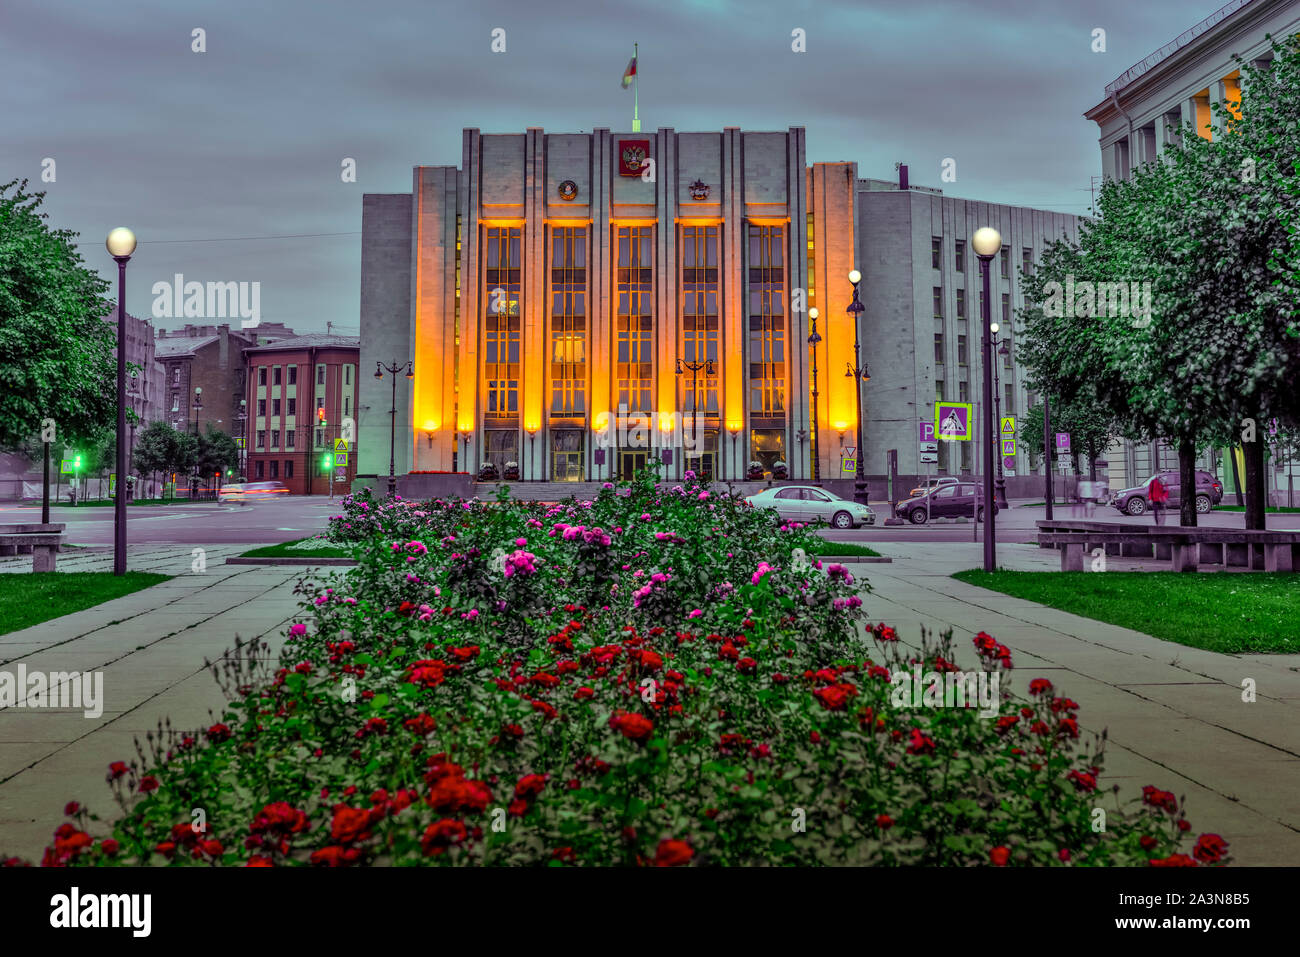 A government building illuminated at night and flowers in a park in St. Petersburg, Russia. Stock Photo